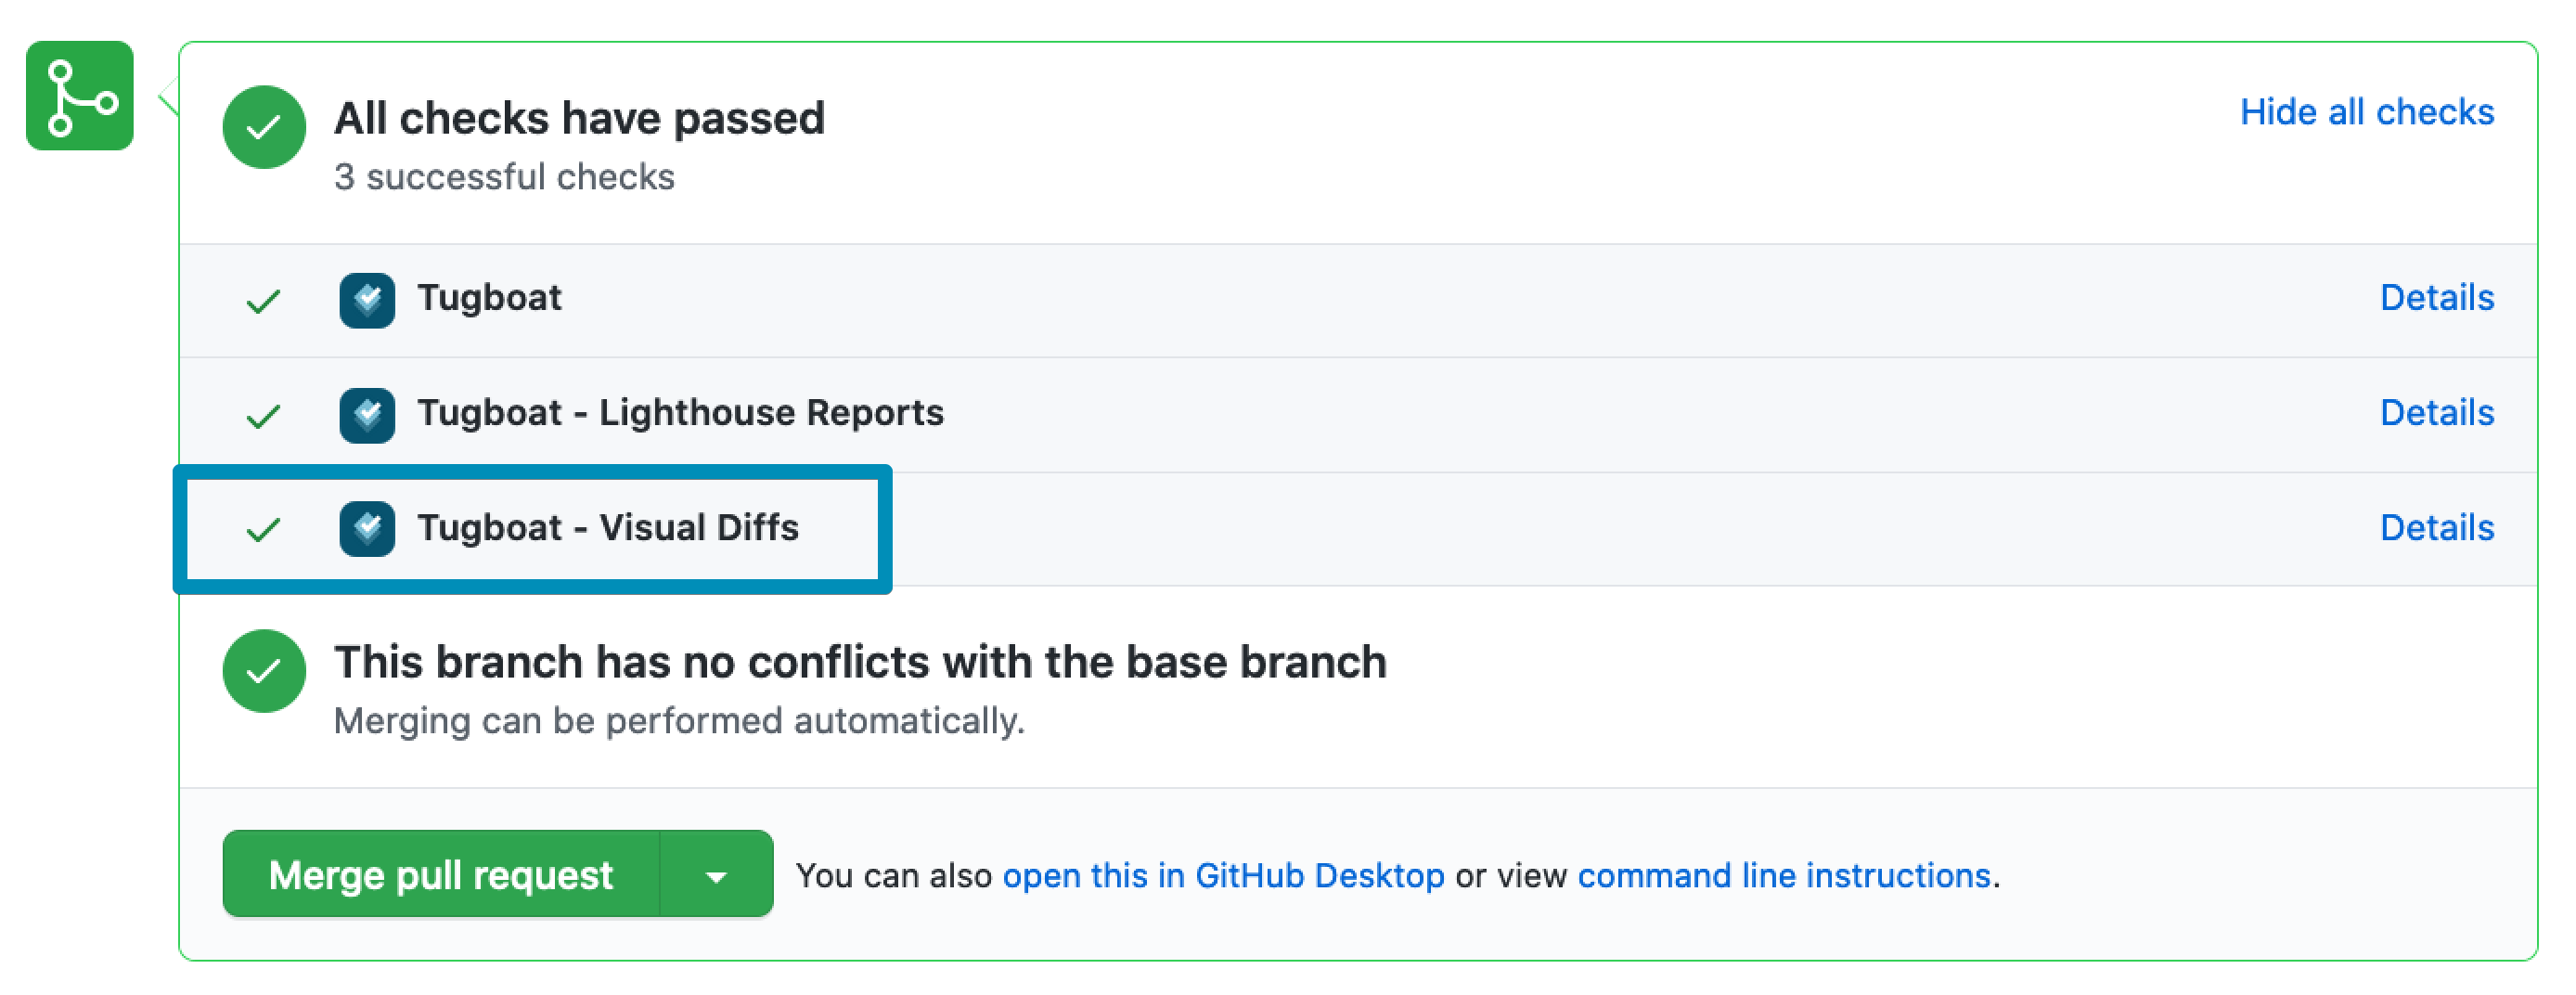 A screenshot of a pull request on GitHub, highlighting a passed visual regression test result from Tugboat.